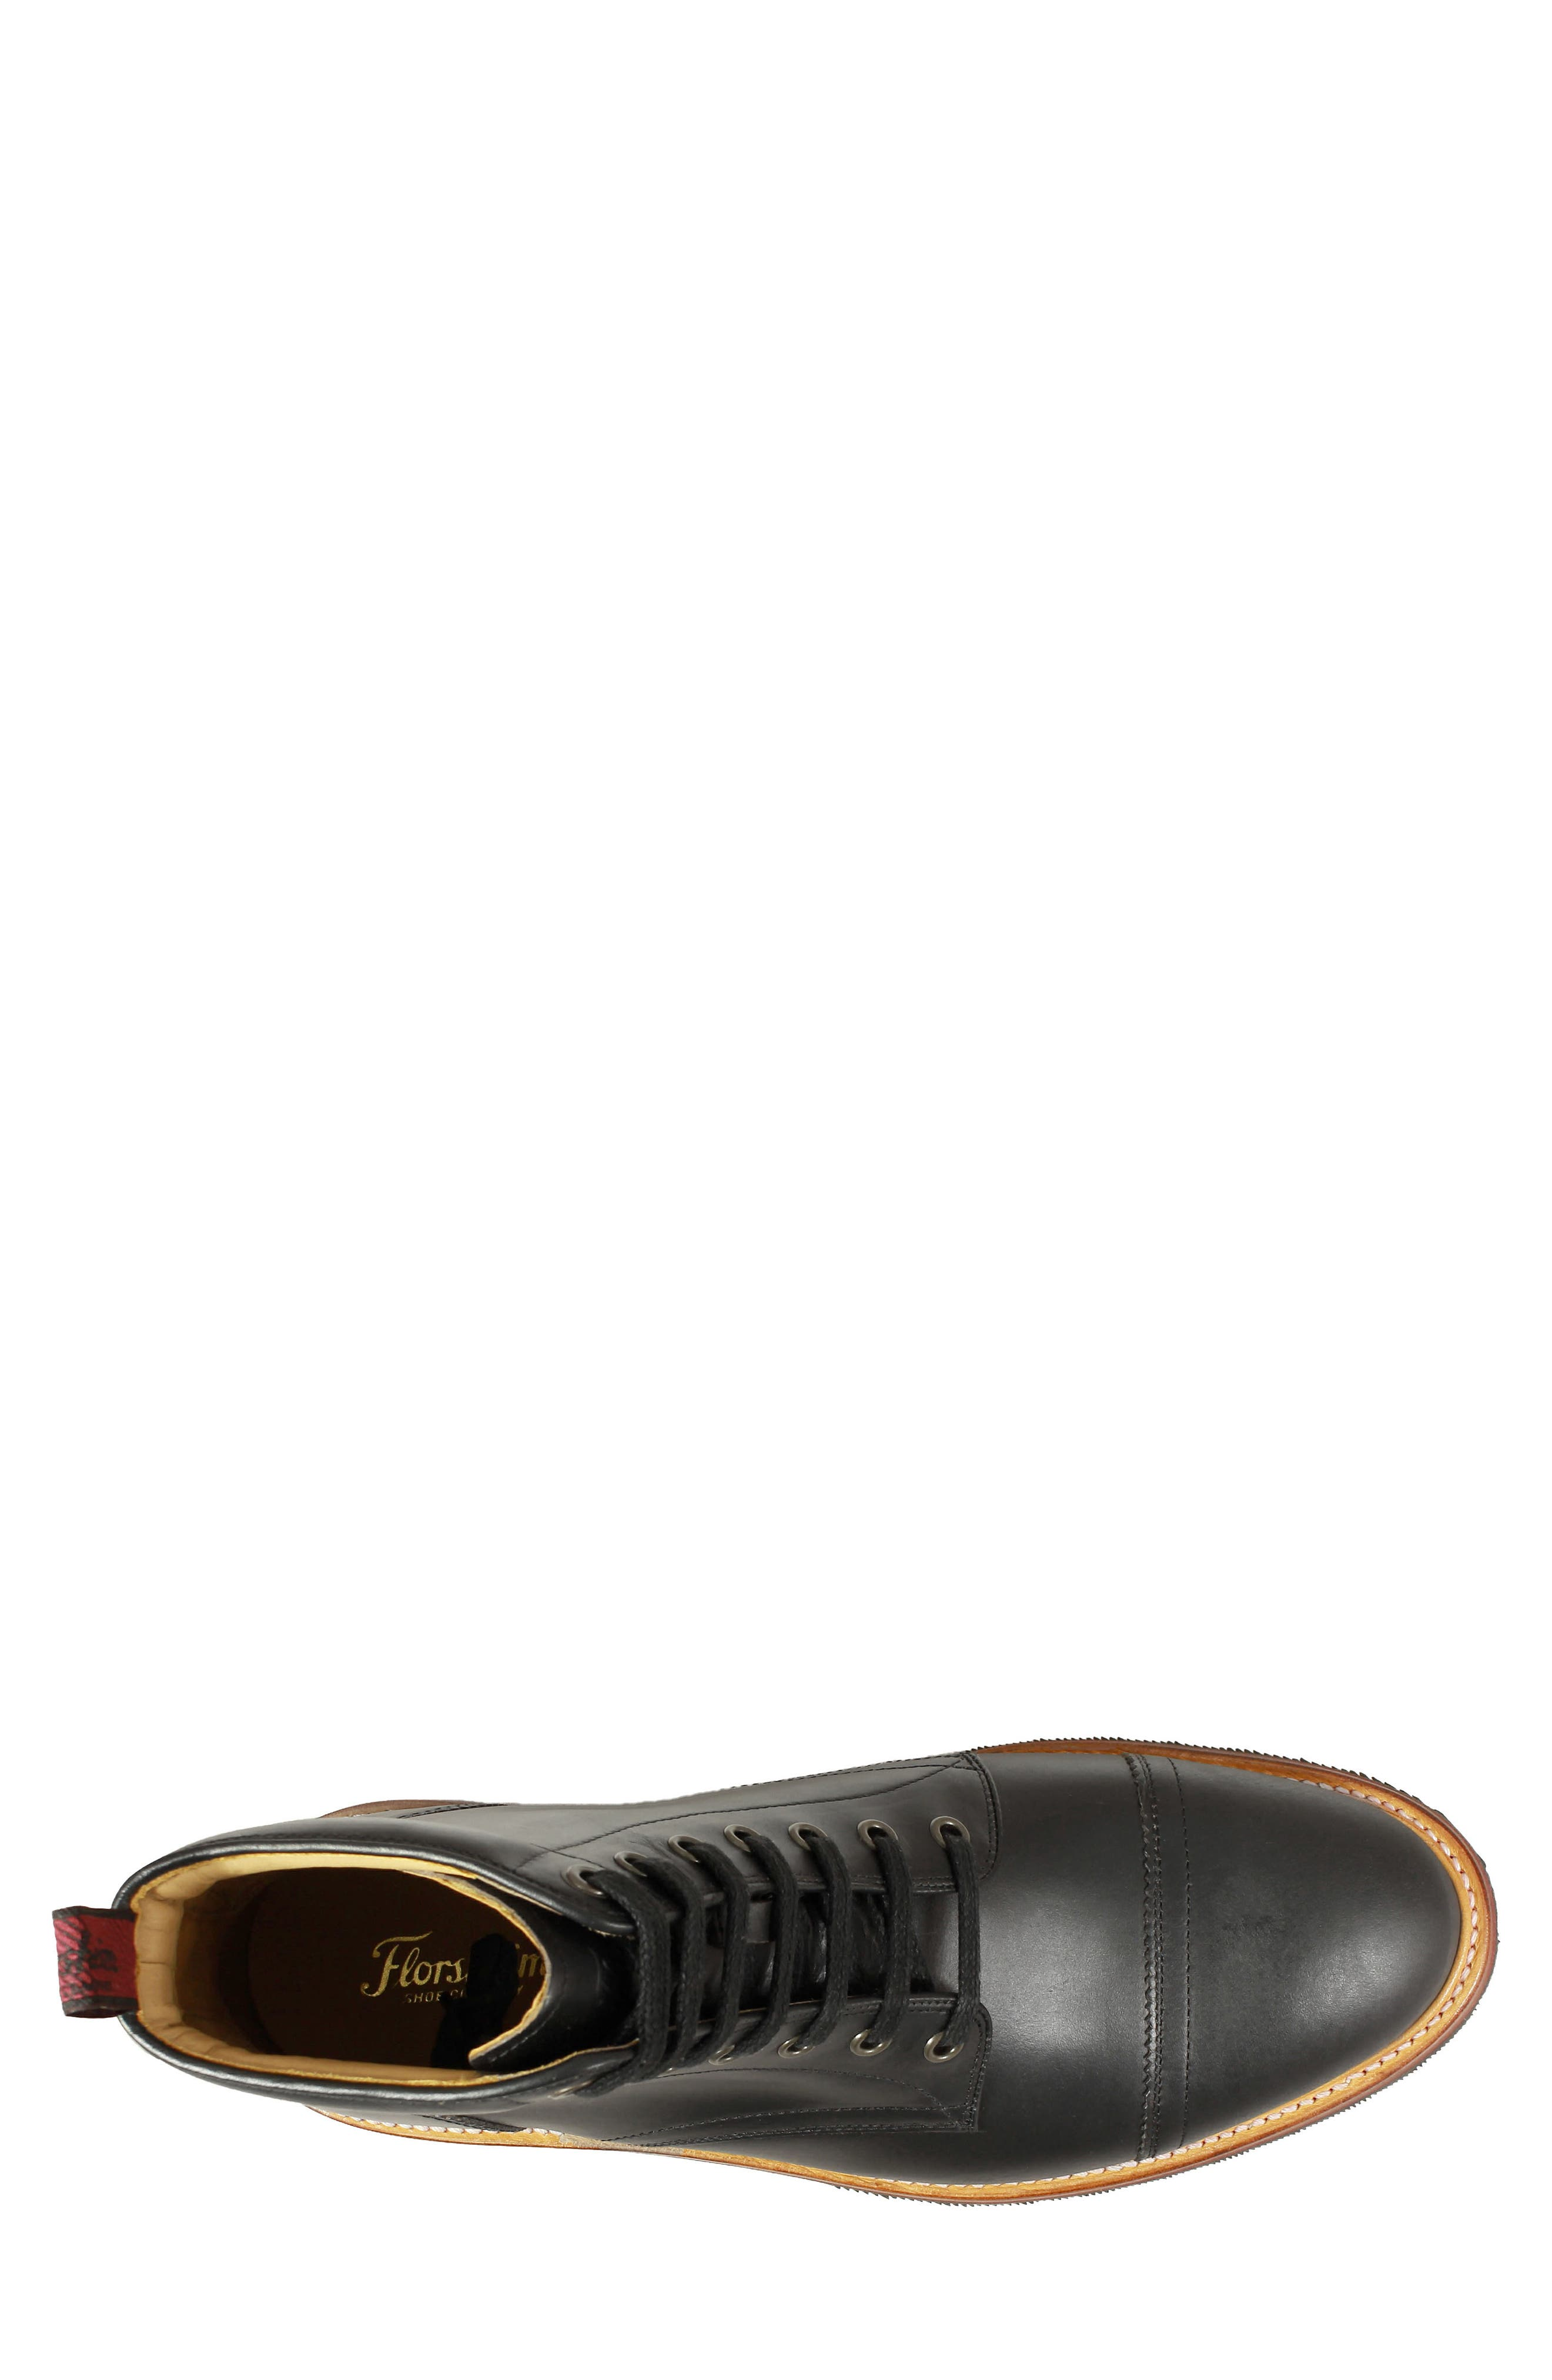 Founcry Cap Toe Boot,                             Alternate thumbnail 5, color,                             BLACK LEATHER